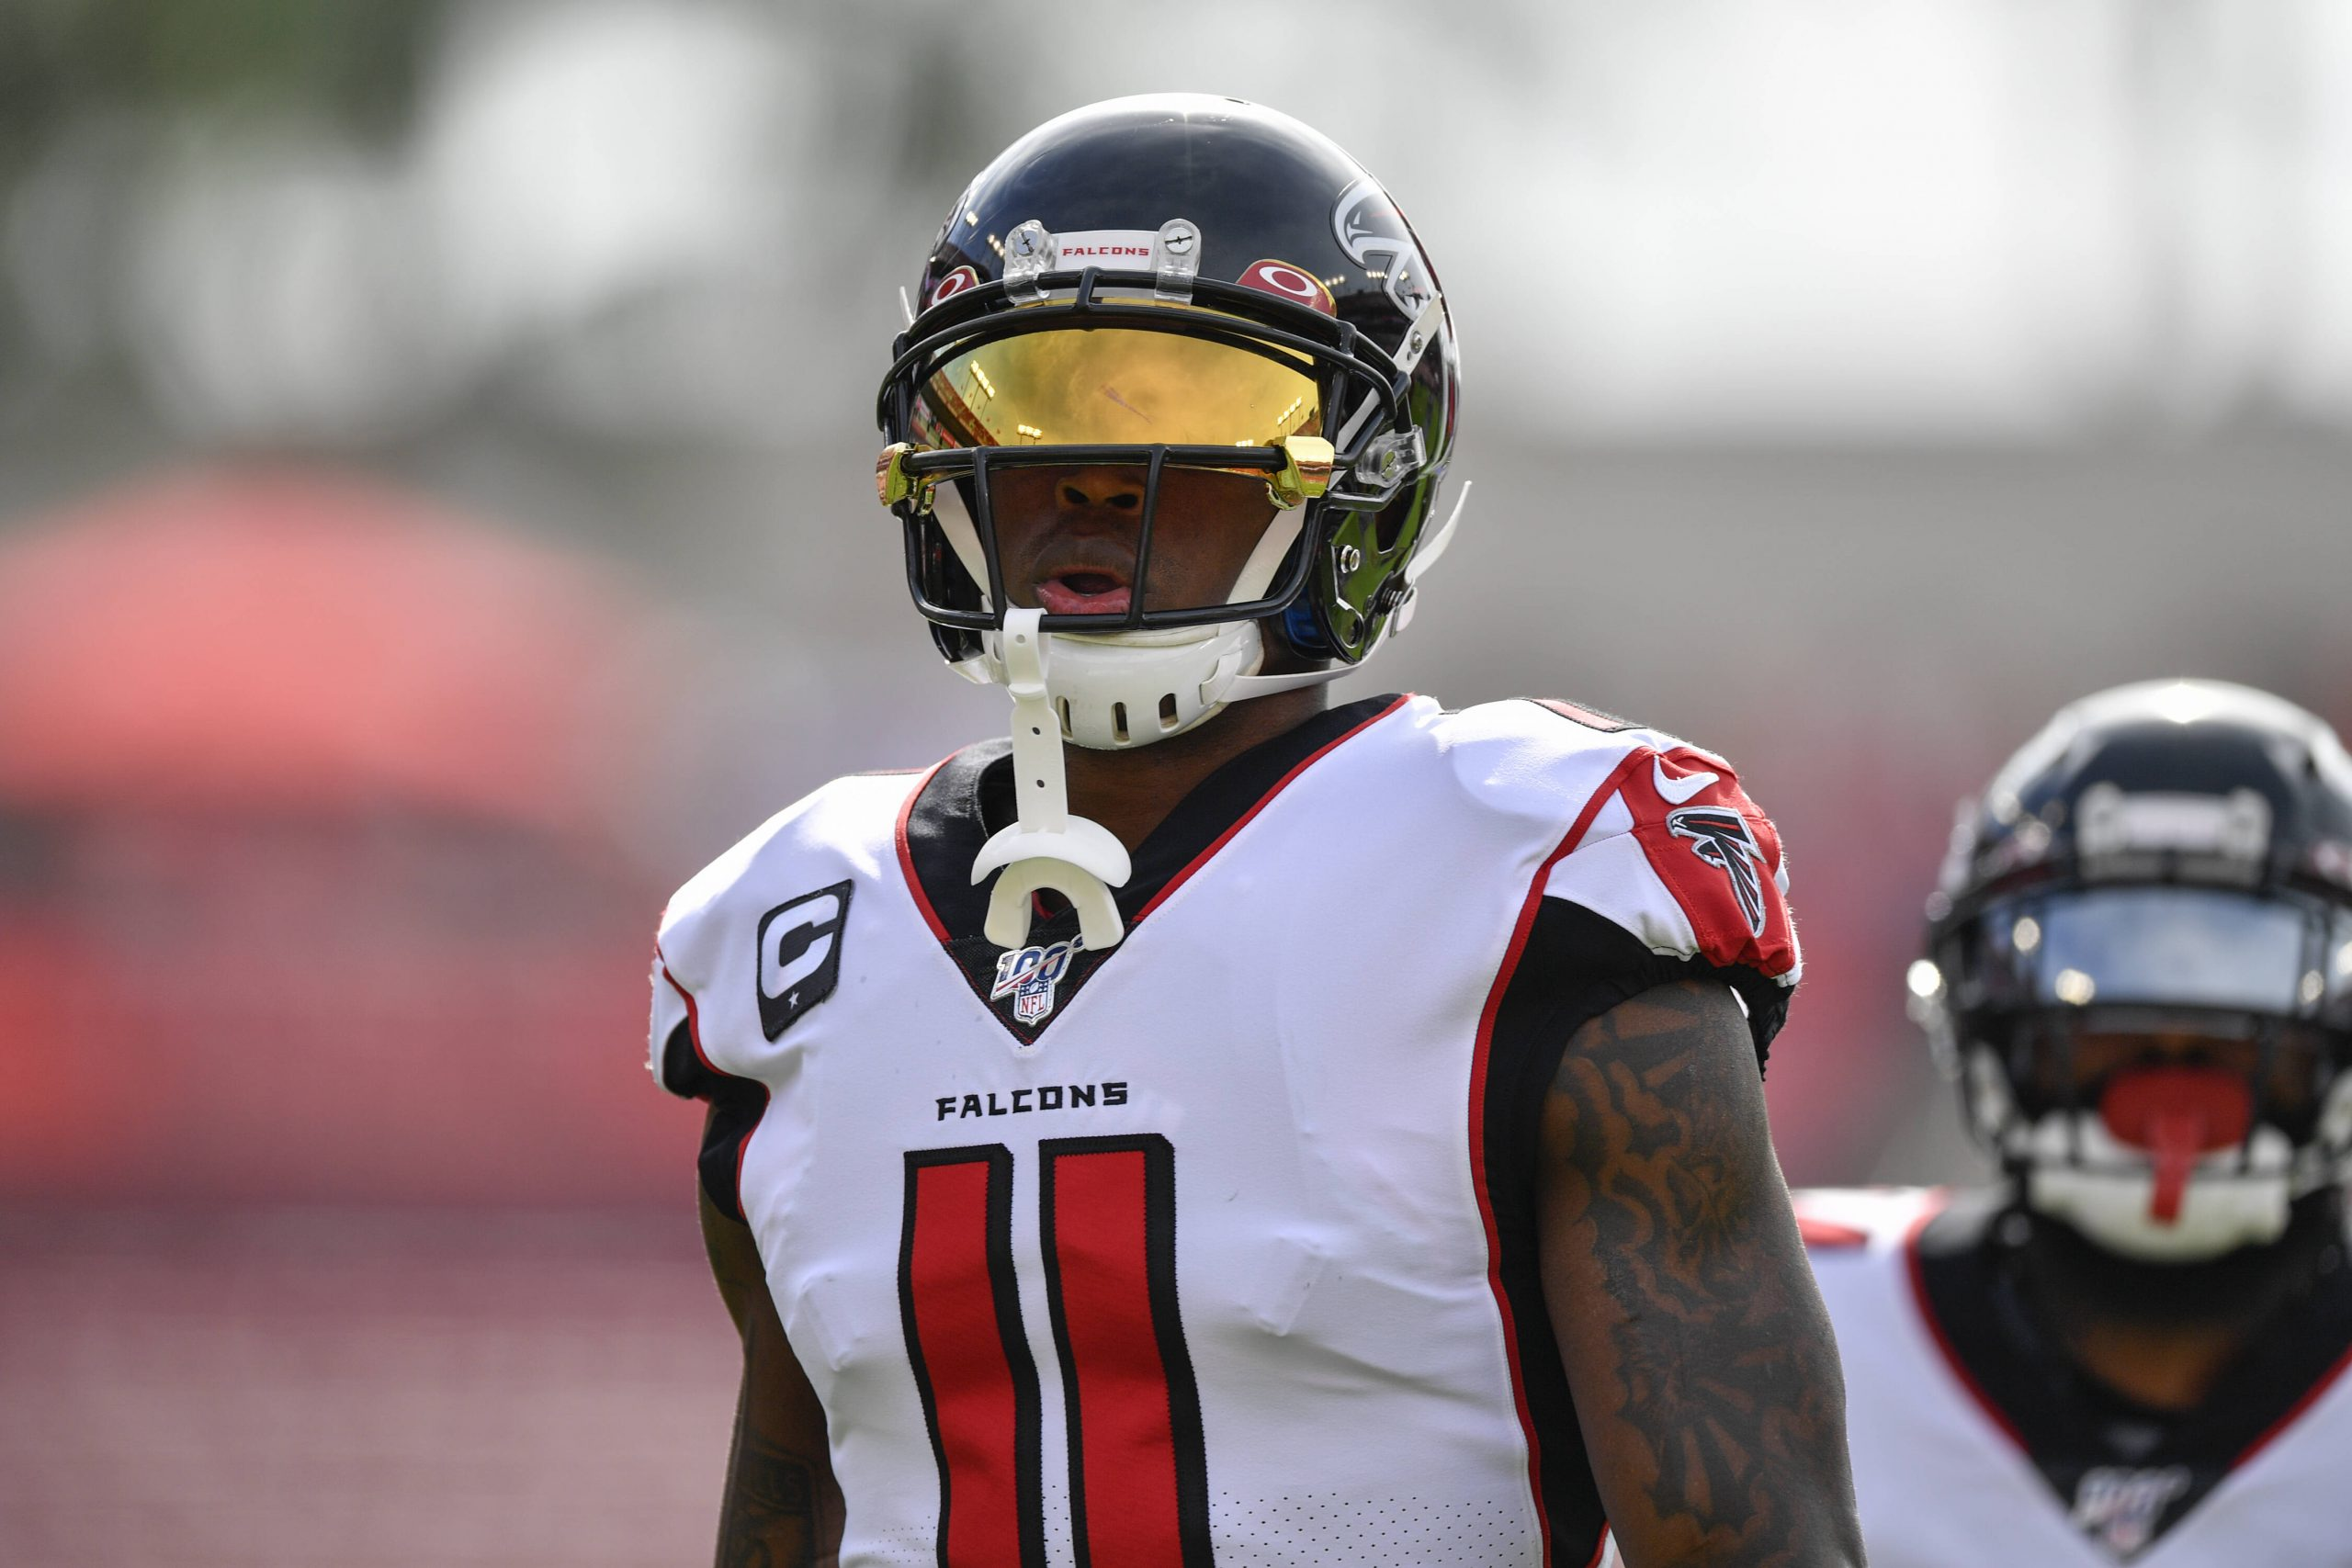 TAMPA, FL - DECEMBER 29: Atlanta Falcons Wide Receiver Julio Jones (11) prior to the first half of an NFL, American Foot